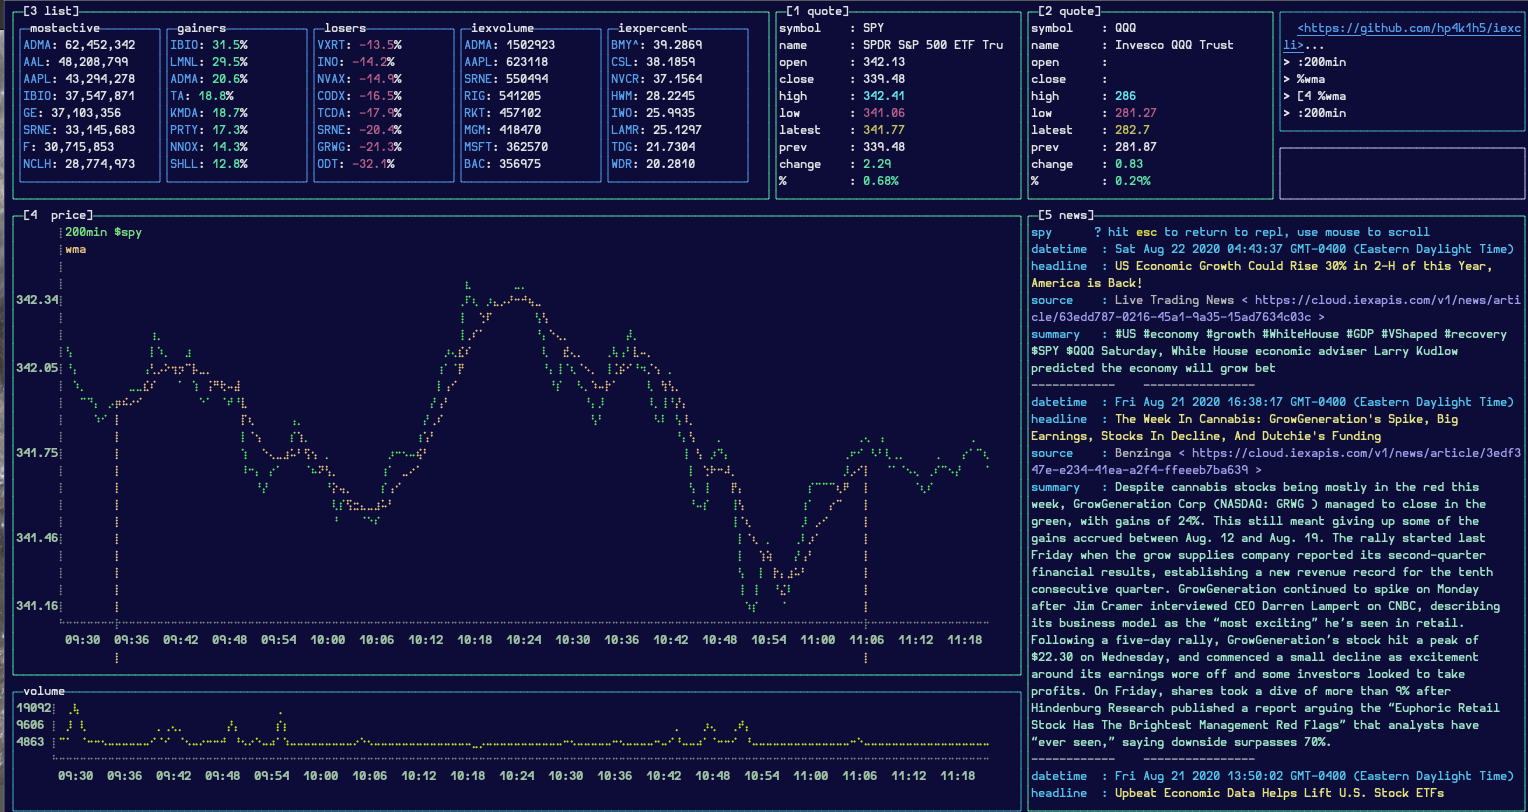 screenshot of a terminal window displaying a stock chart, active gainers/losers, and stock related news